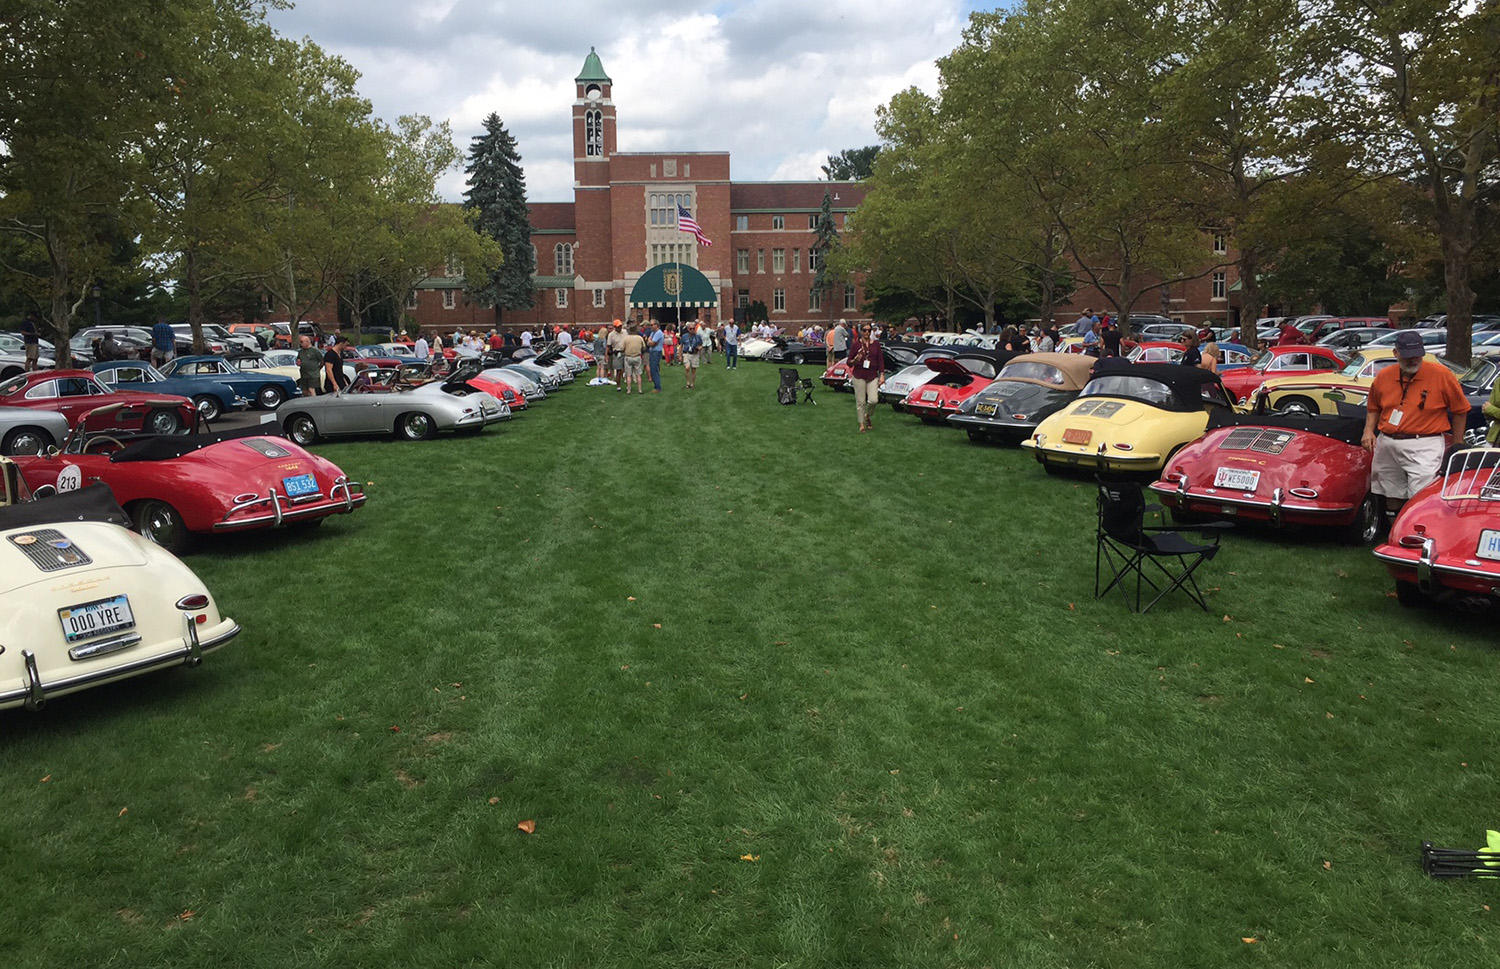 Events - Out and about in the Porsche community